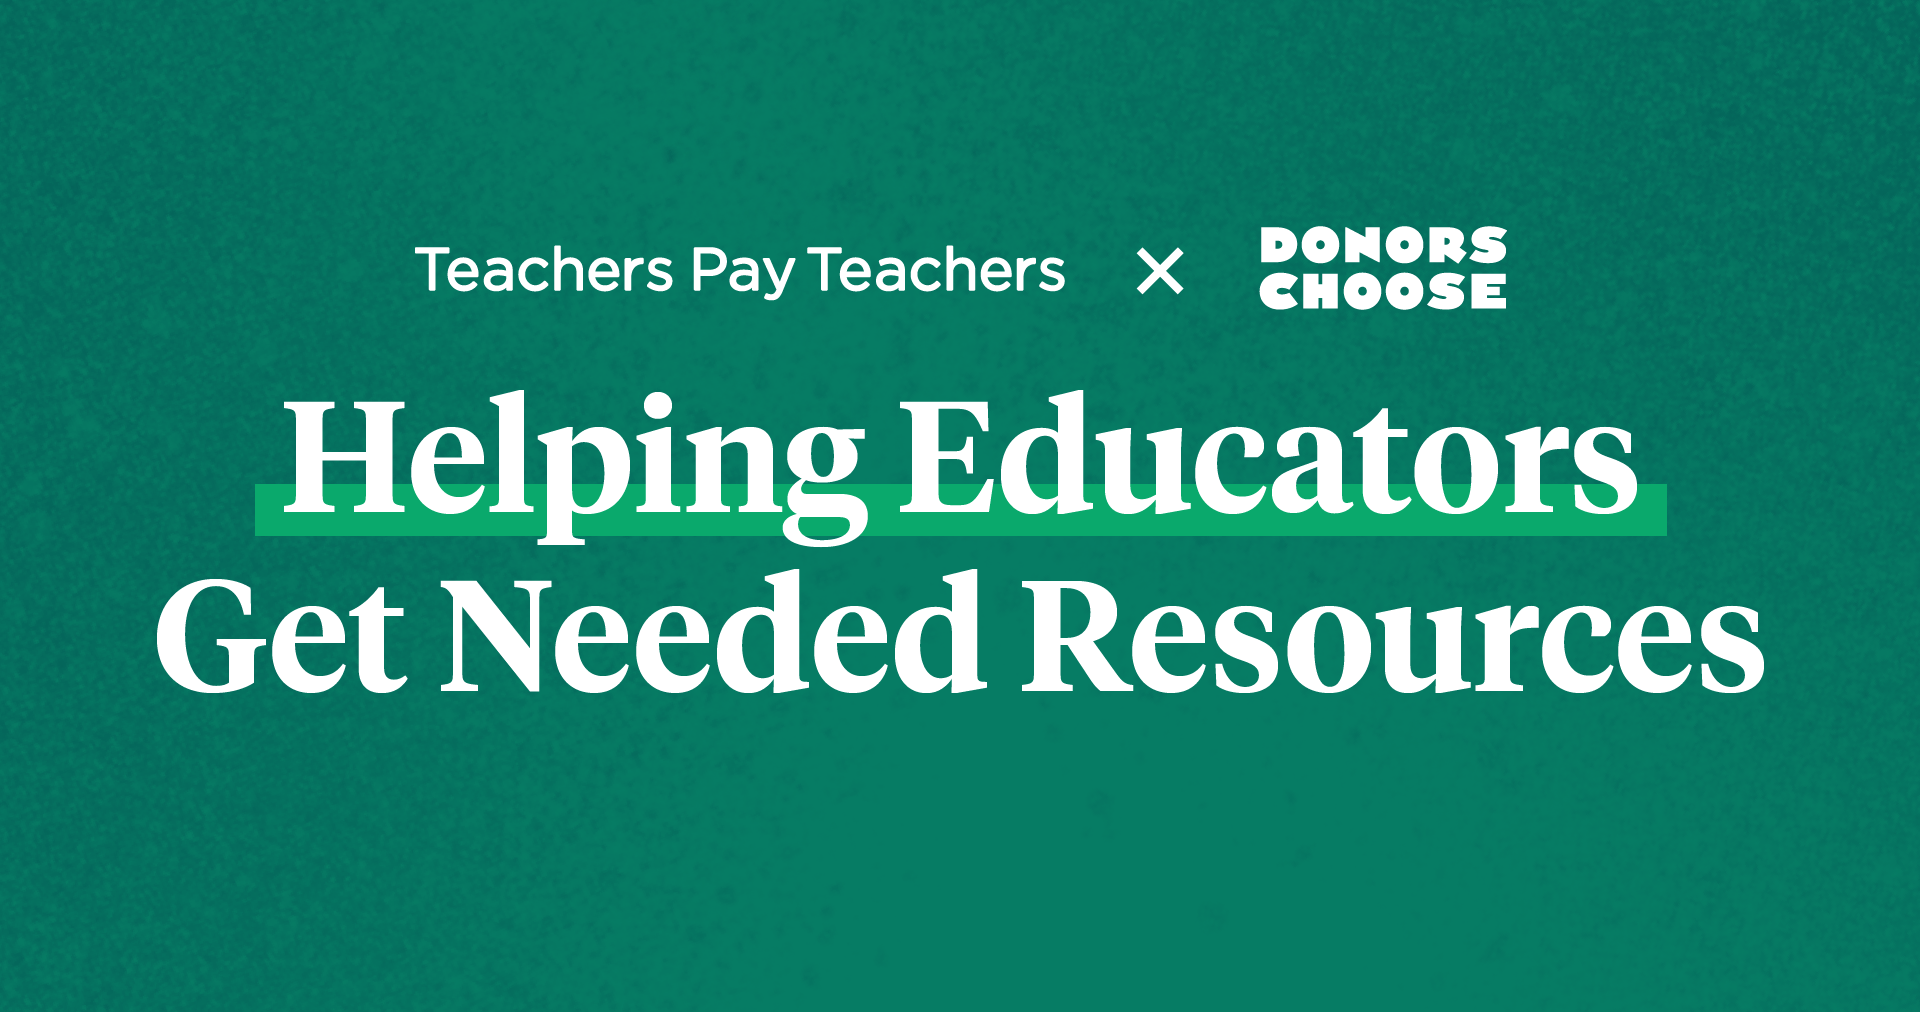 Teachers Pay Teachers x DonorsChoose: Helping Educators Get Needed Resources